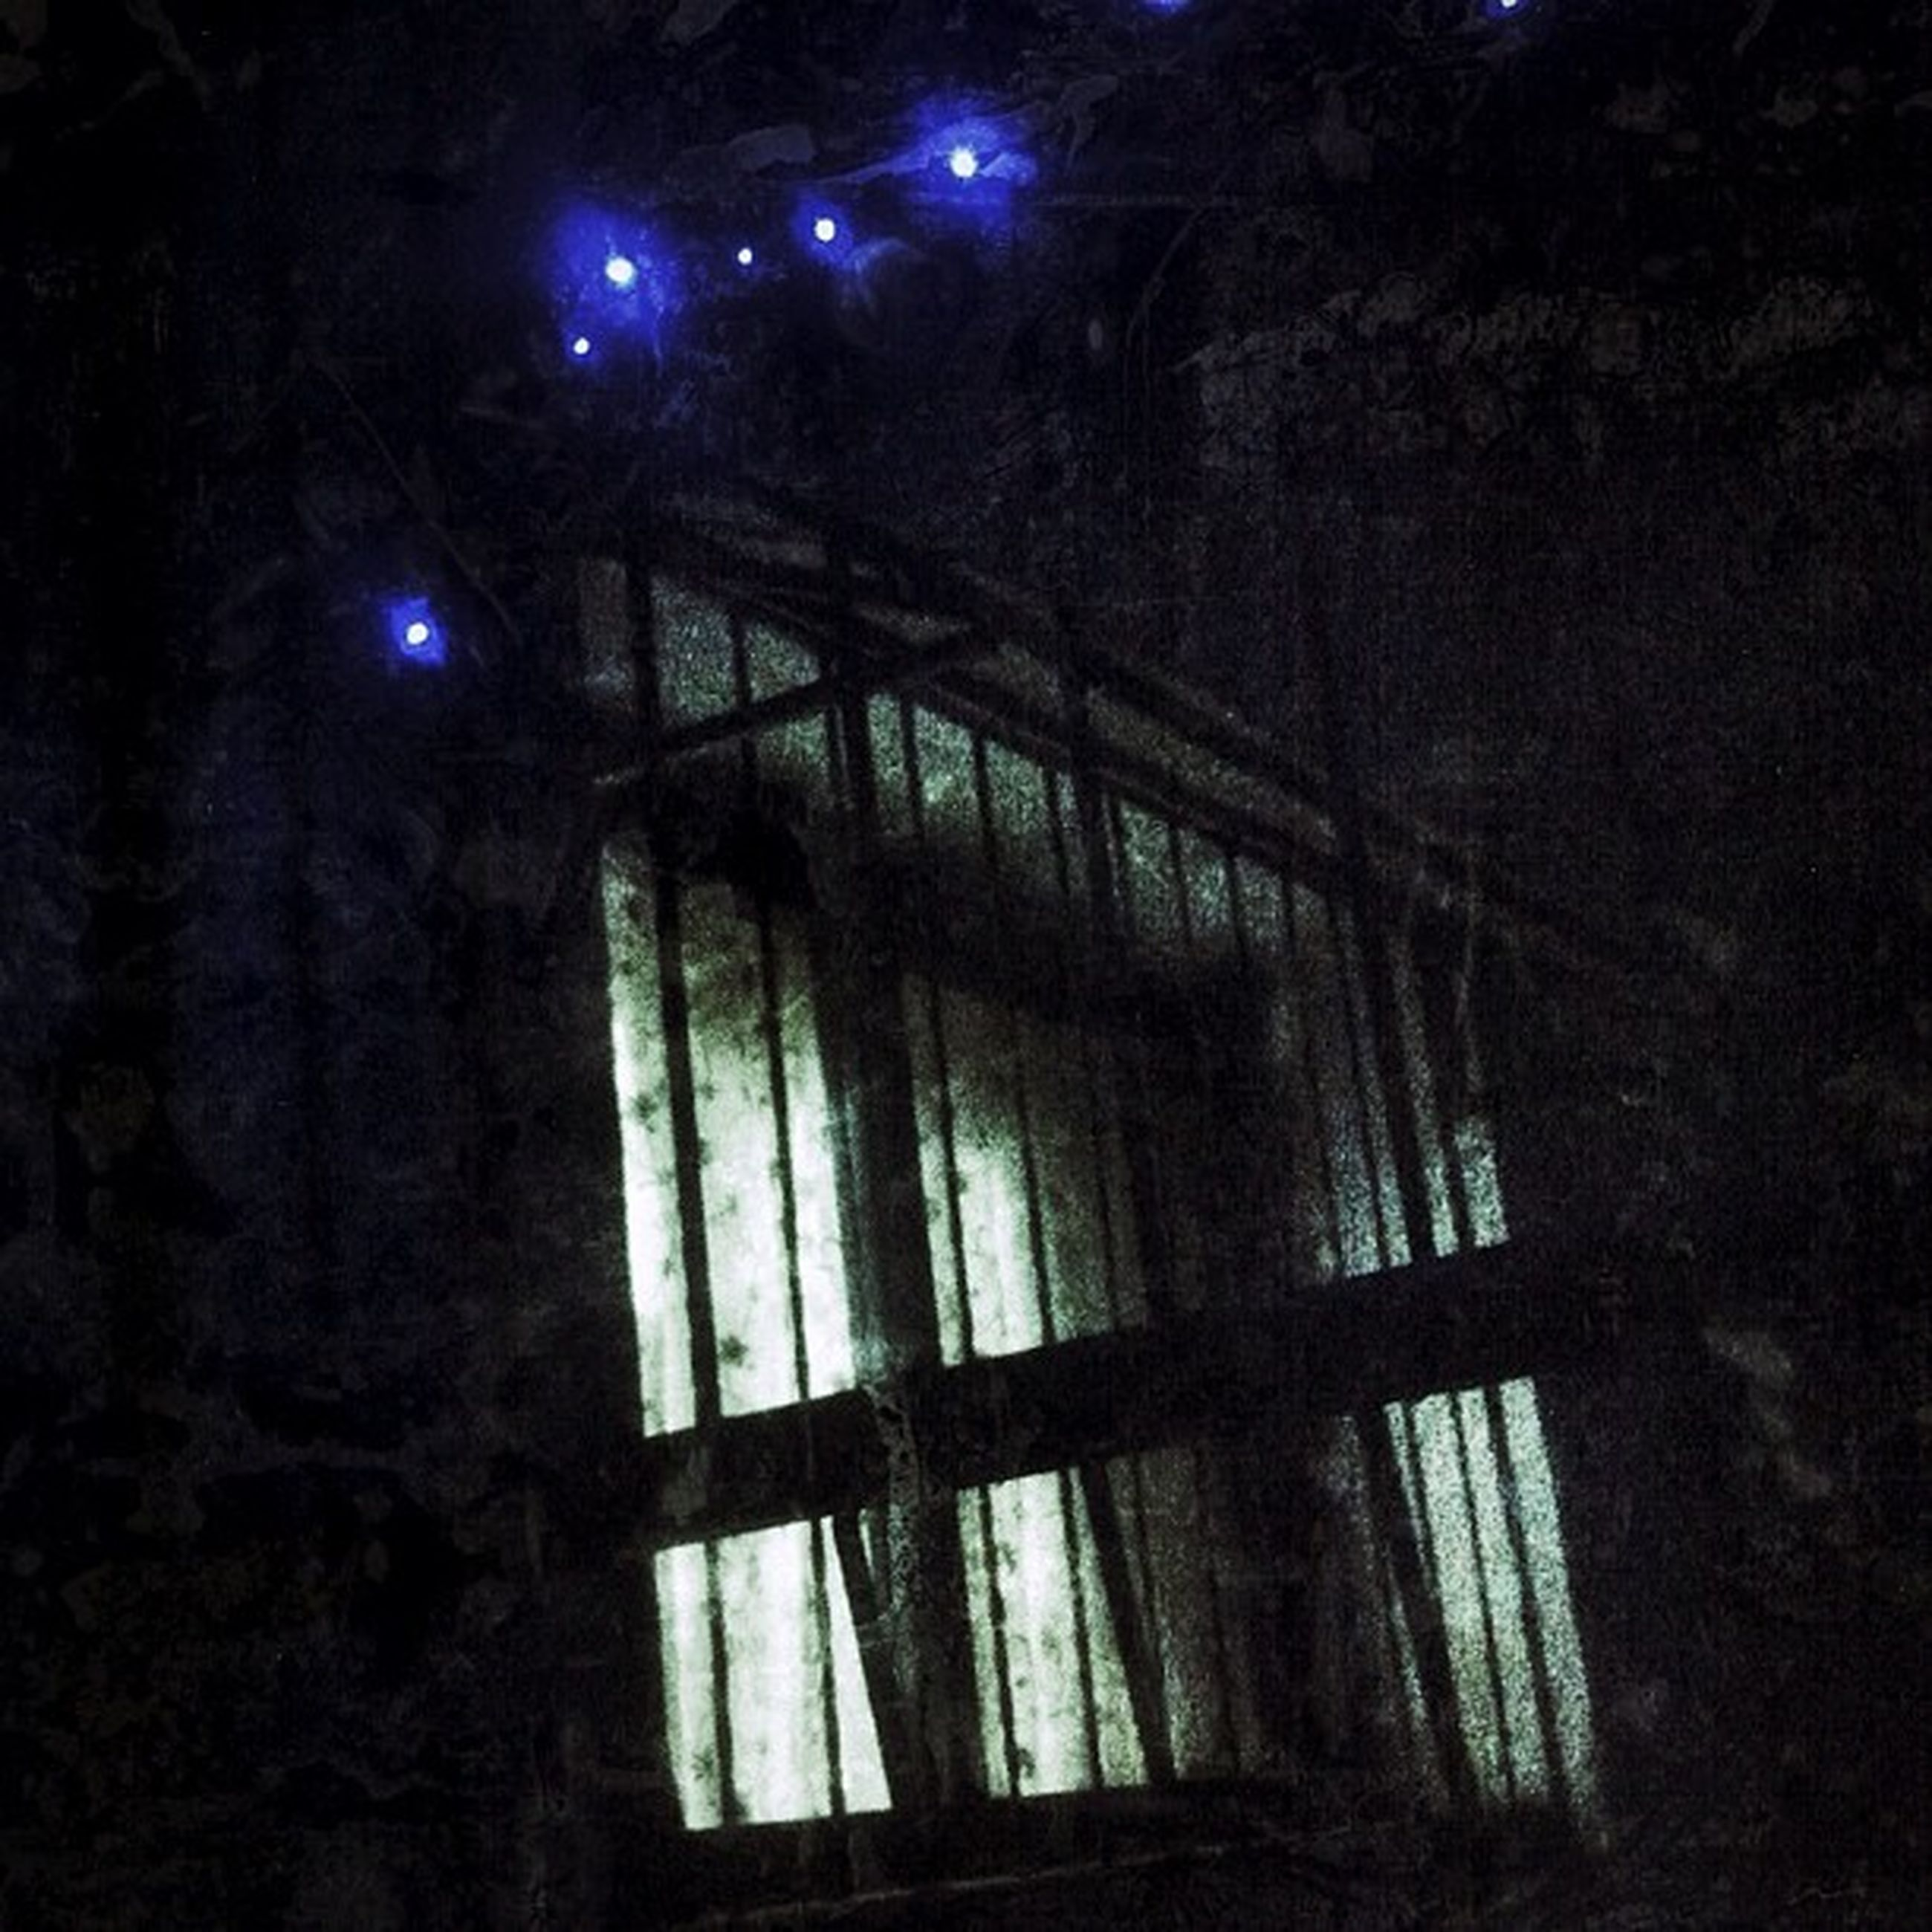 night, illuminated, dark, built structure, architecture, low angle view, indoors, window, lighting equipment, tree, light - natural phenomenon, no people, railing, building exterior, wood - material, entrance, house, building, closed